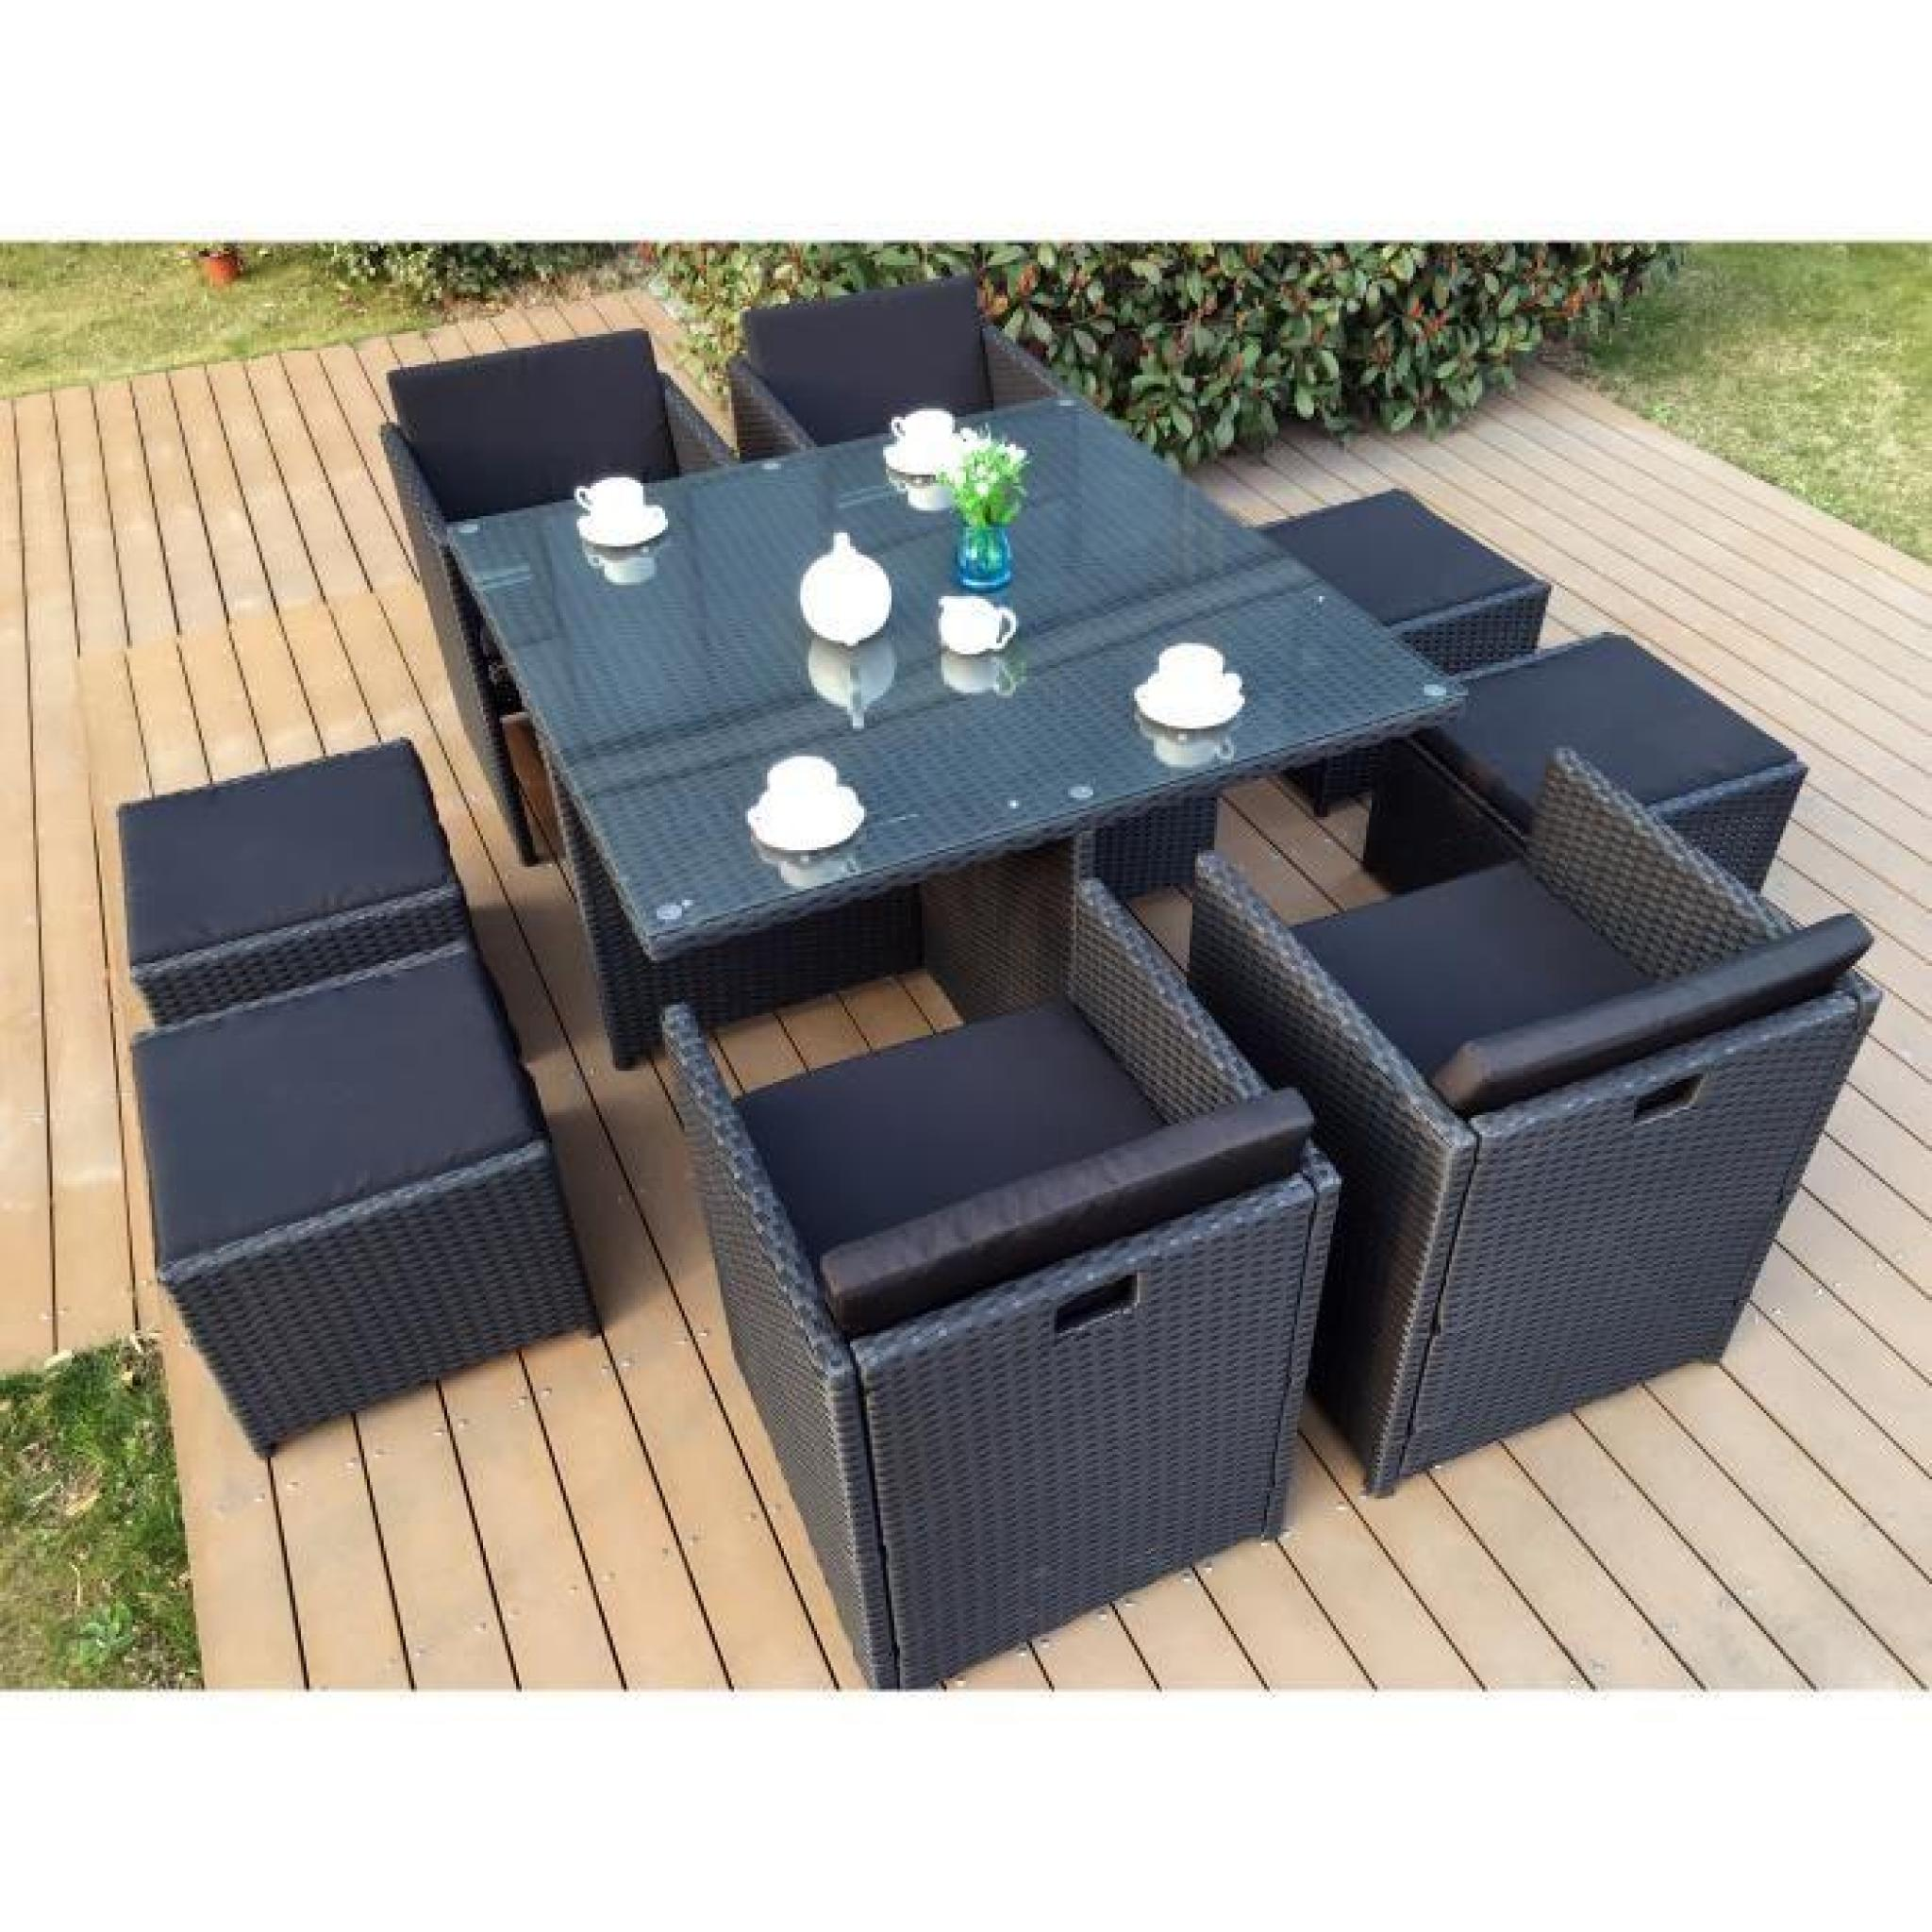 Miami 8 Salon De Jardin Encastrable 8 Places En R Sine Tress E  # Table De Jardin Resine Noir